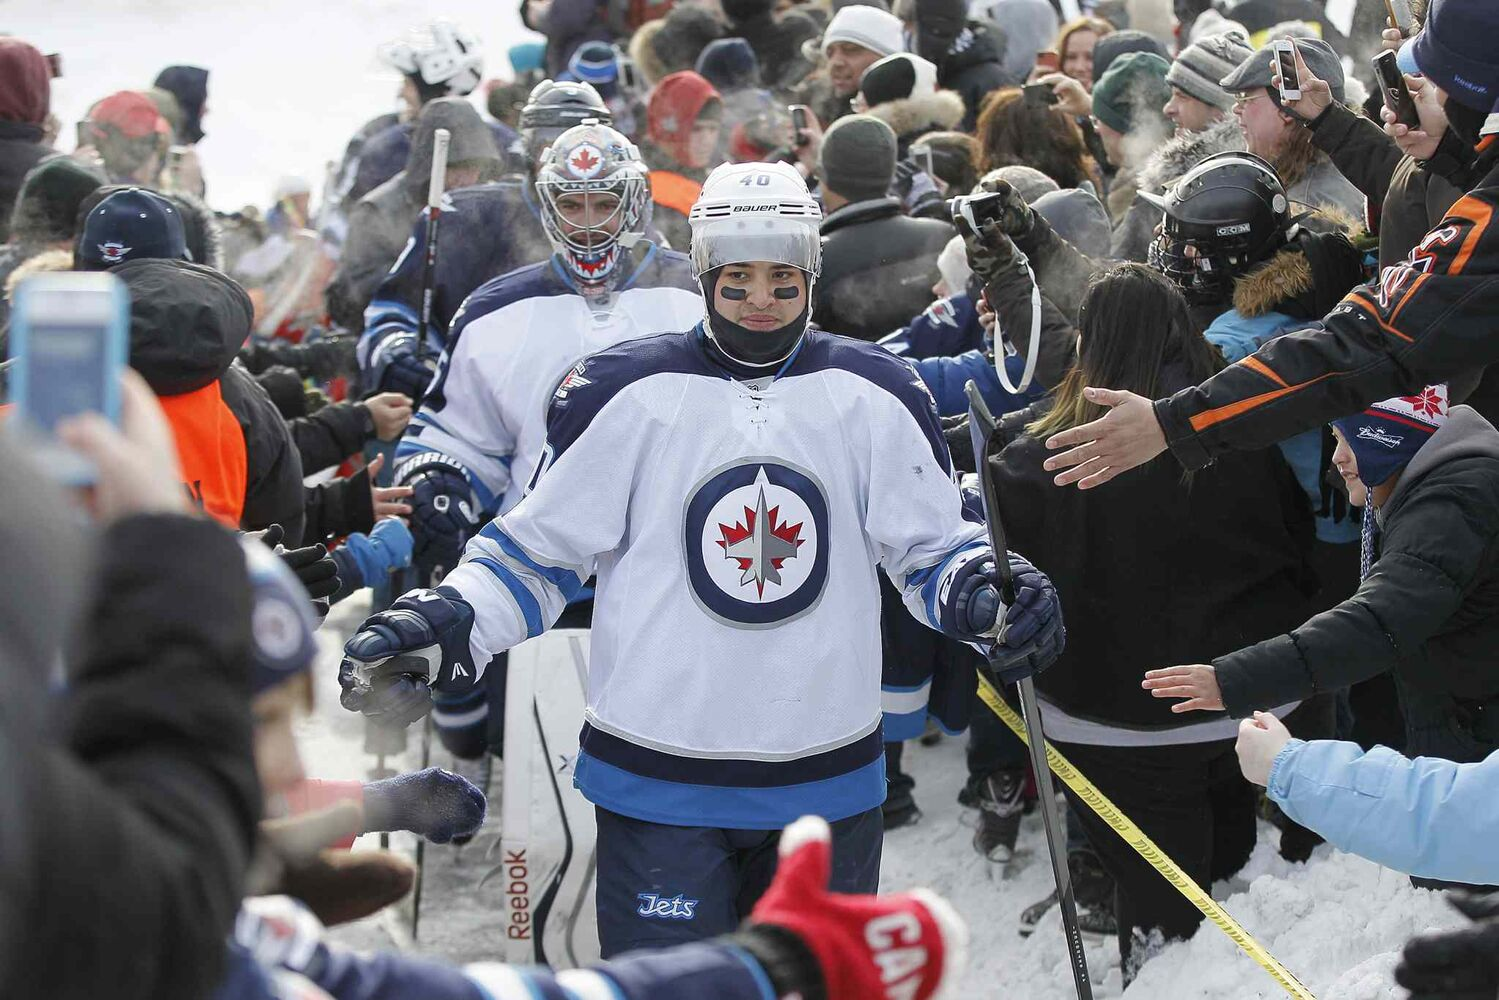 Jets forward Devin Setoguchi and goaltender Al Montoya greet fans at The Forks on Sunday. (John Woods / Winnipeg Free Press)